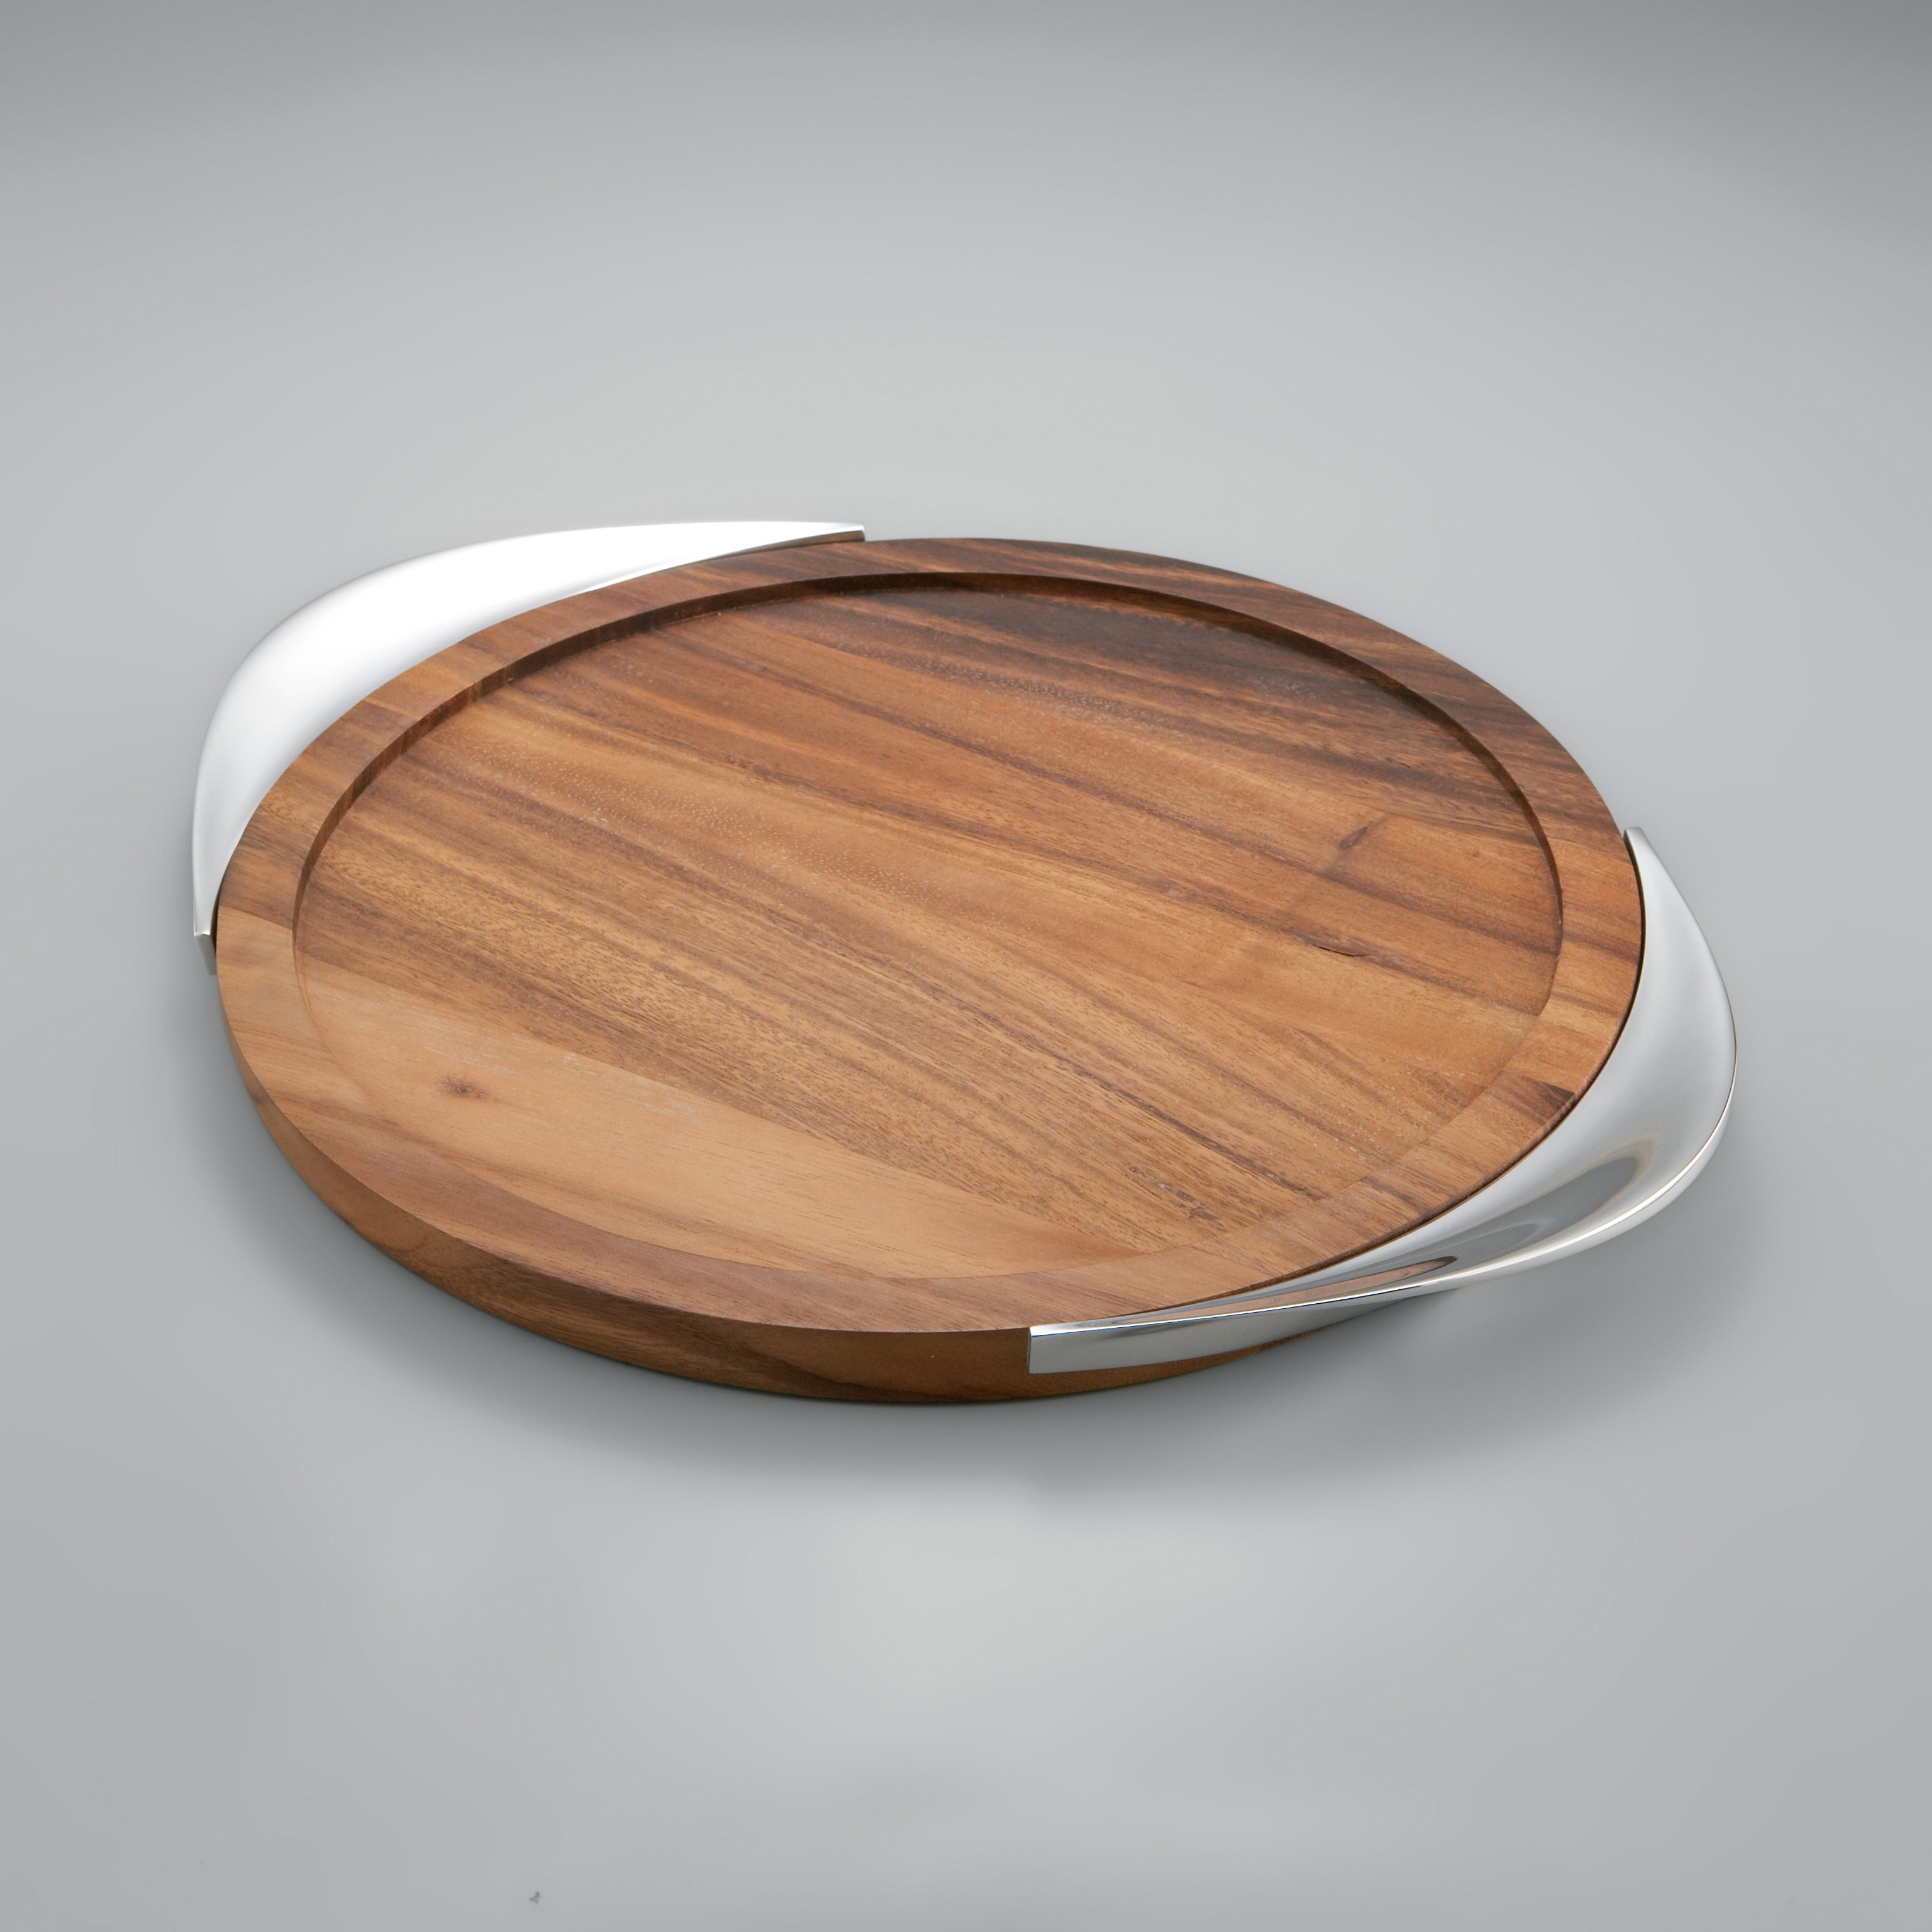 Exquisite nambe with Round Challah Board for interior decor ideas with nambe cookware